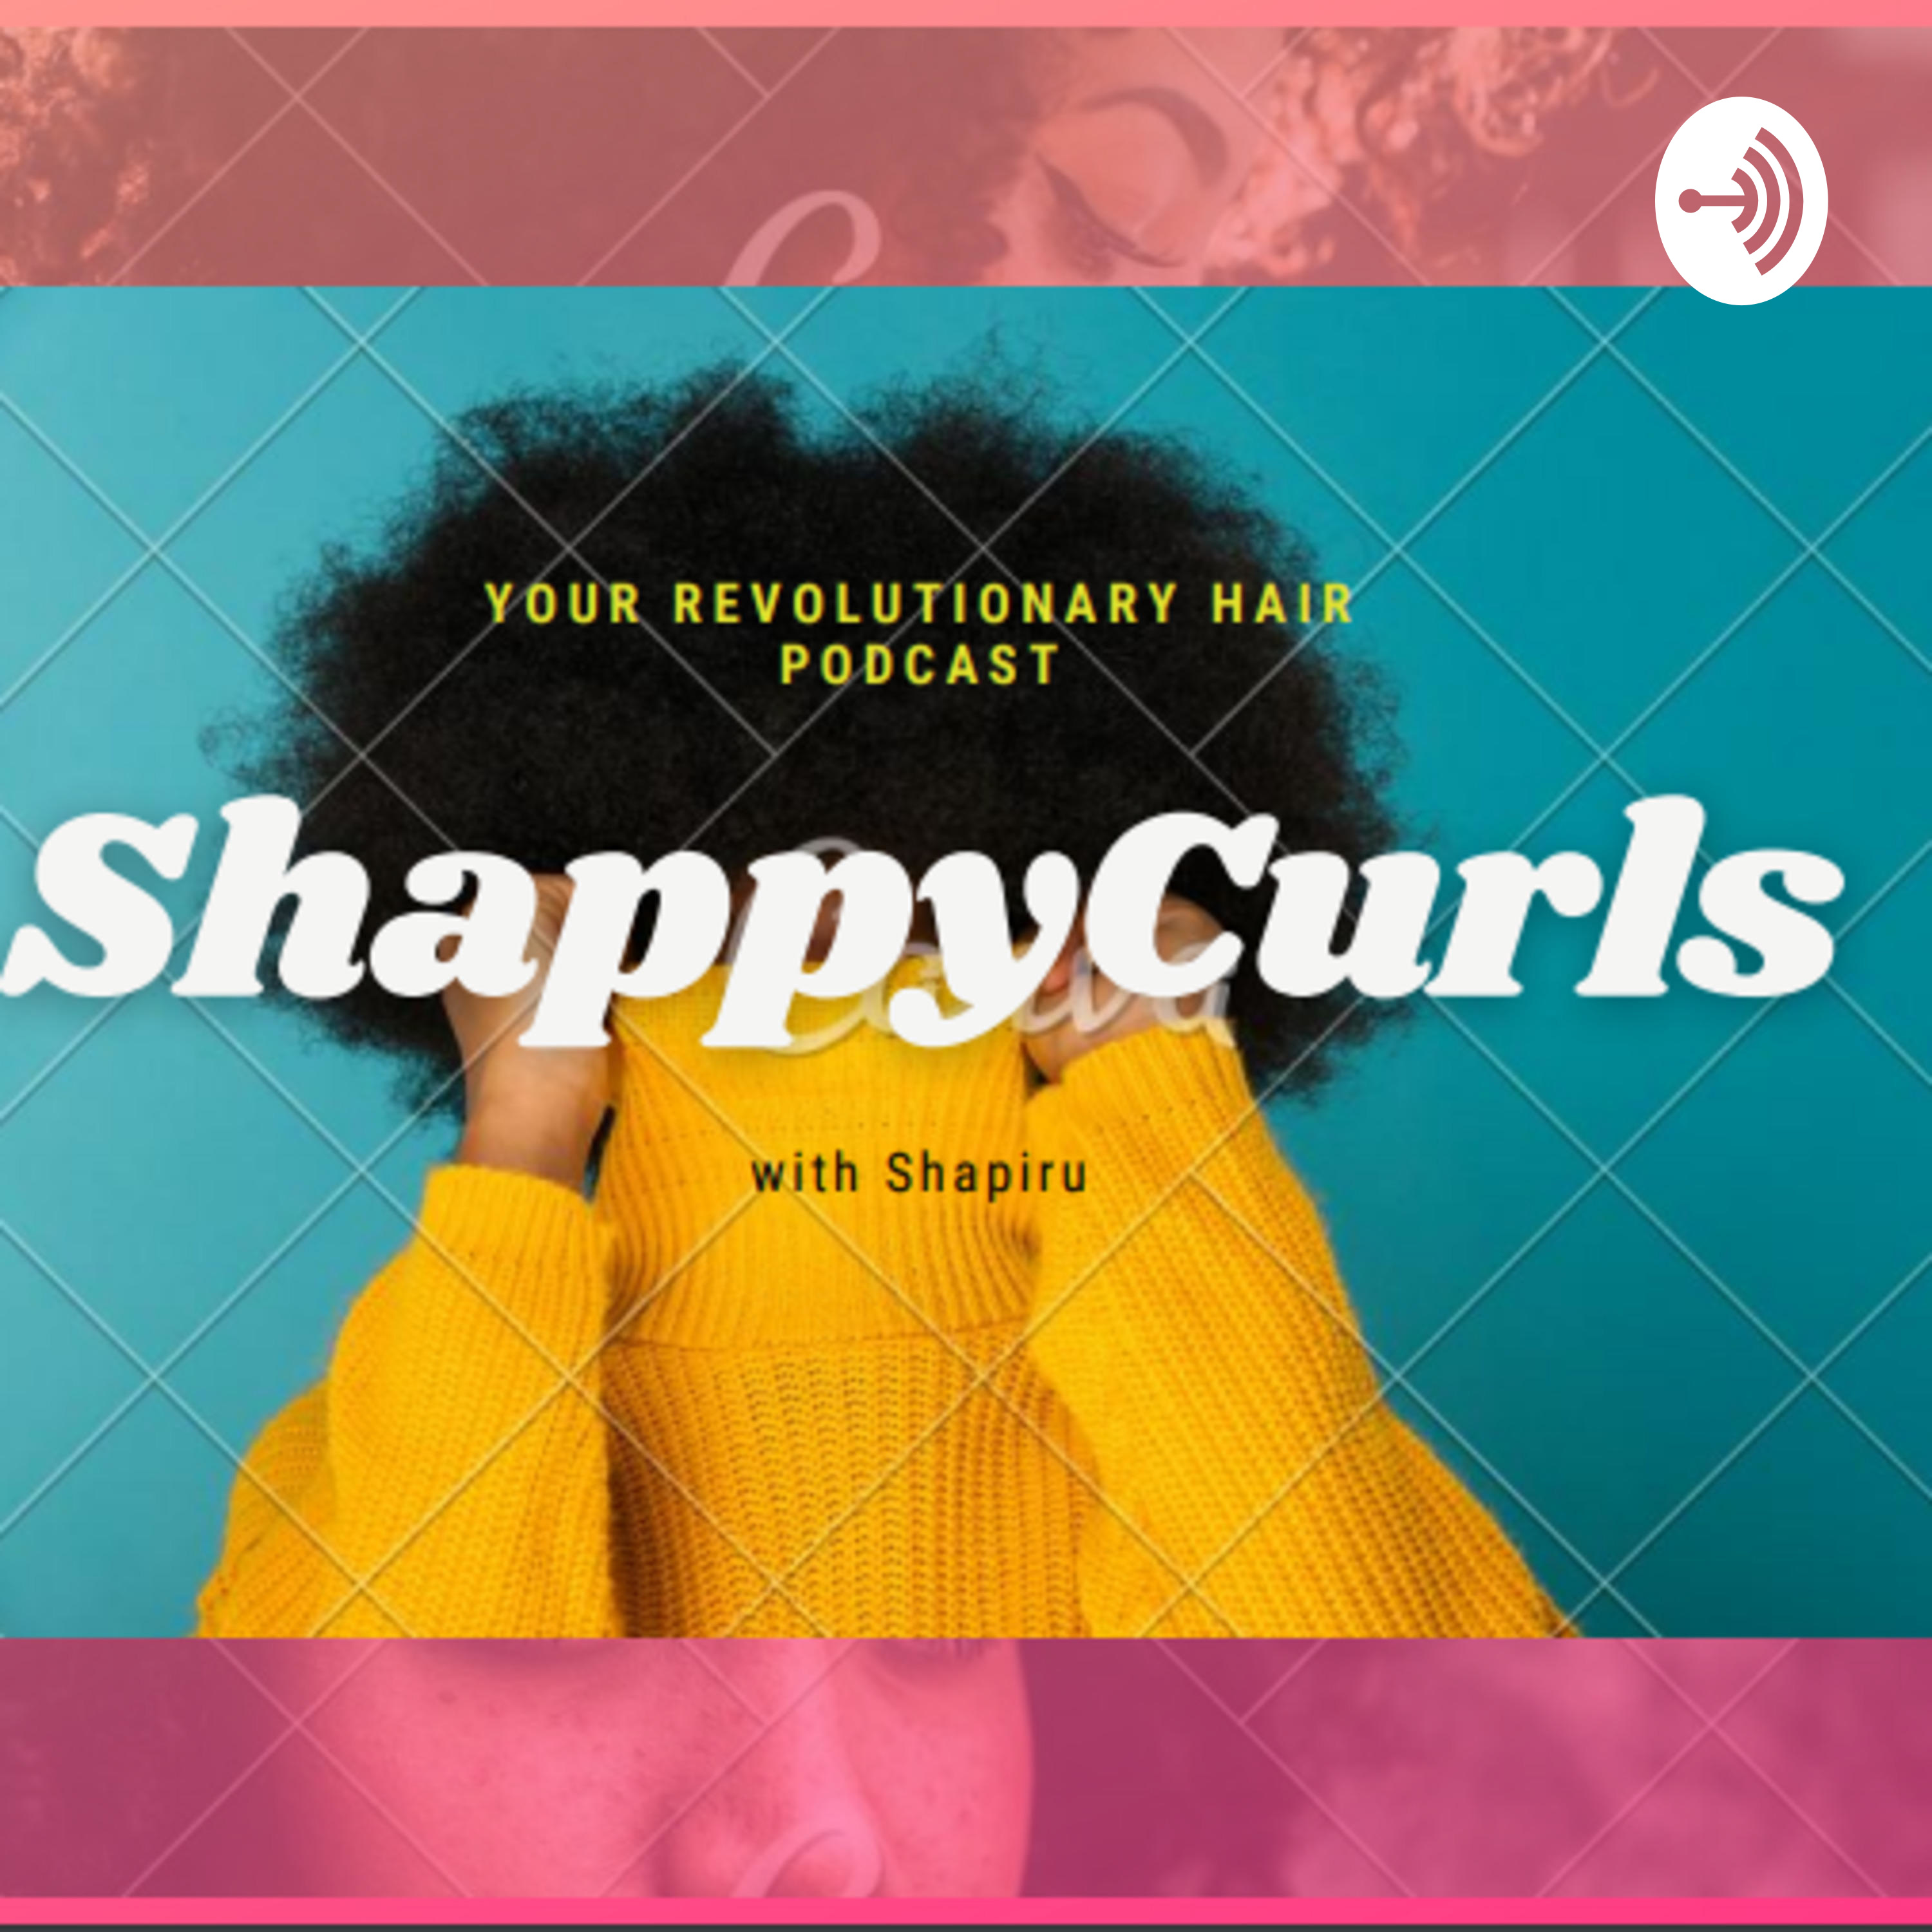 ShappyCurls podcast